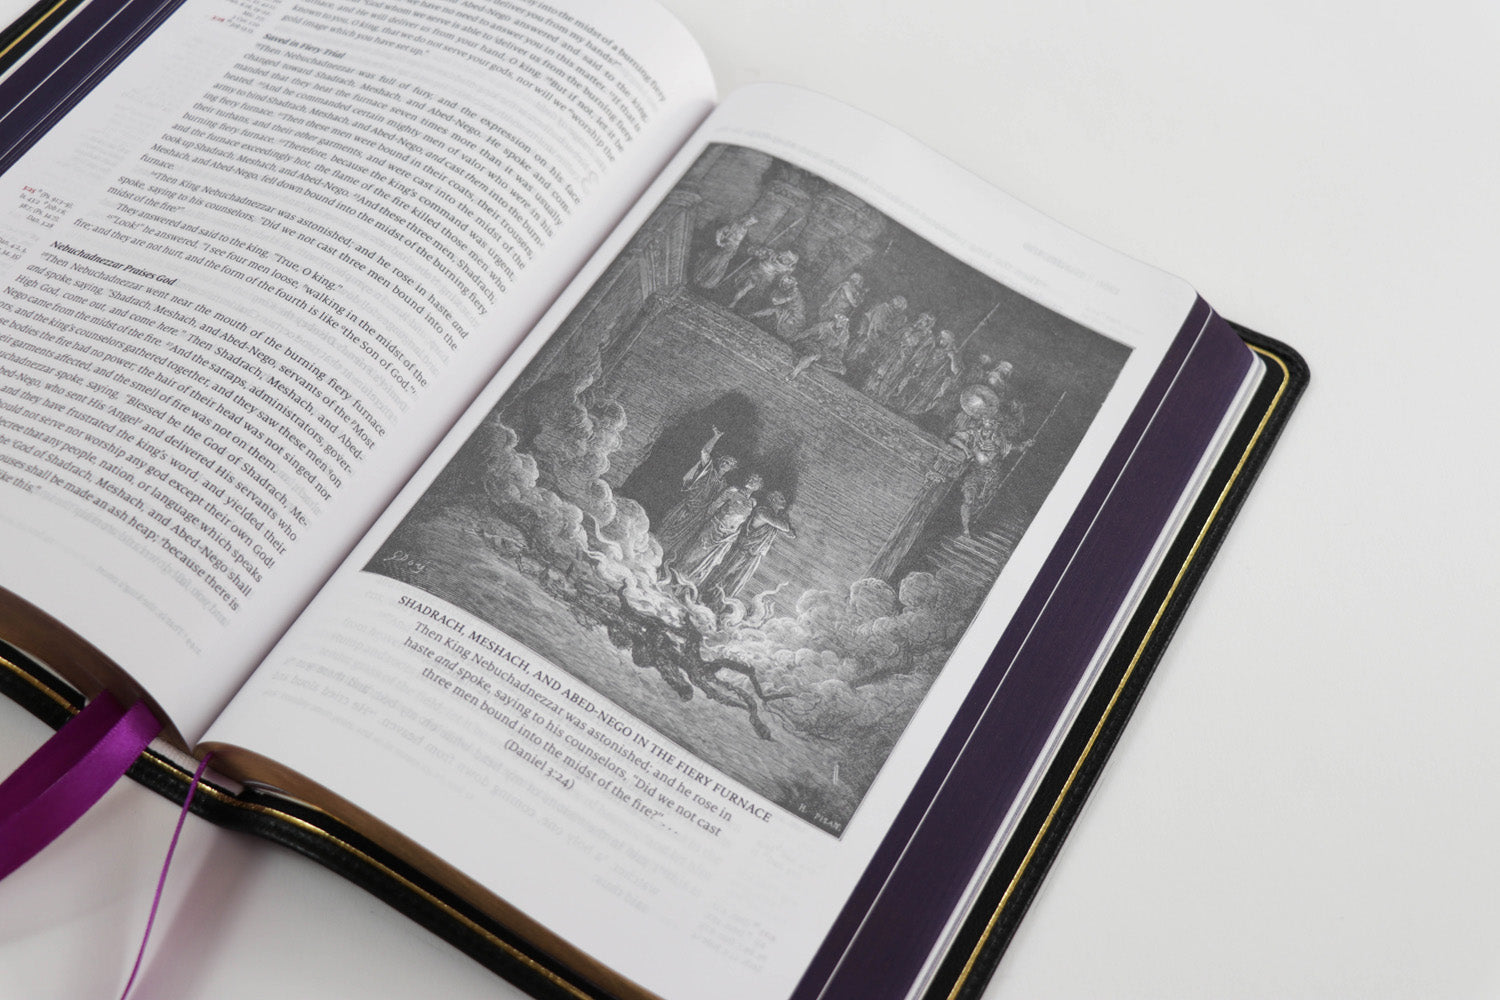 Seconds - 40% OFF - NKJV Word of God - Premium Bible with illustrations from Gustave Dore